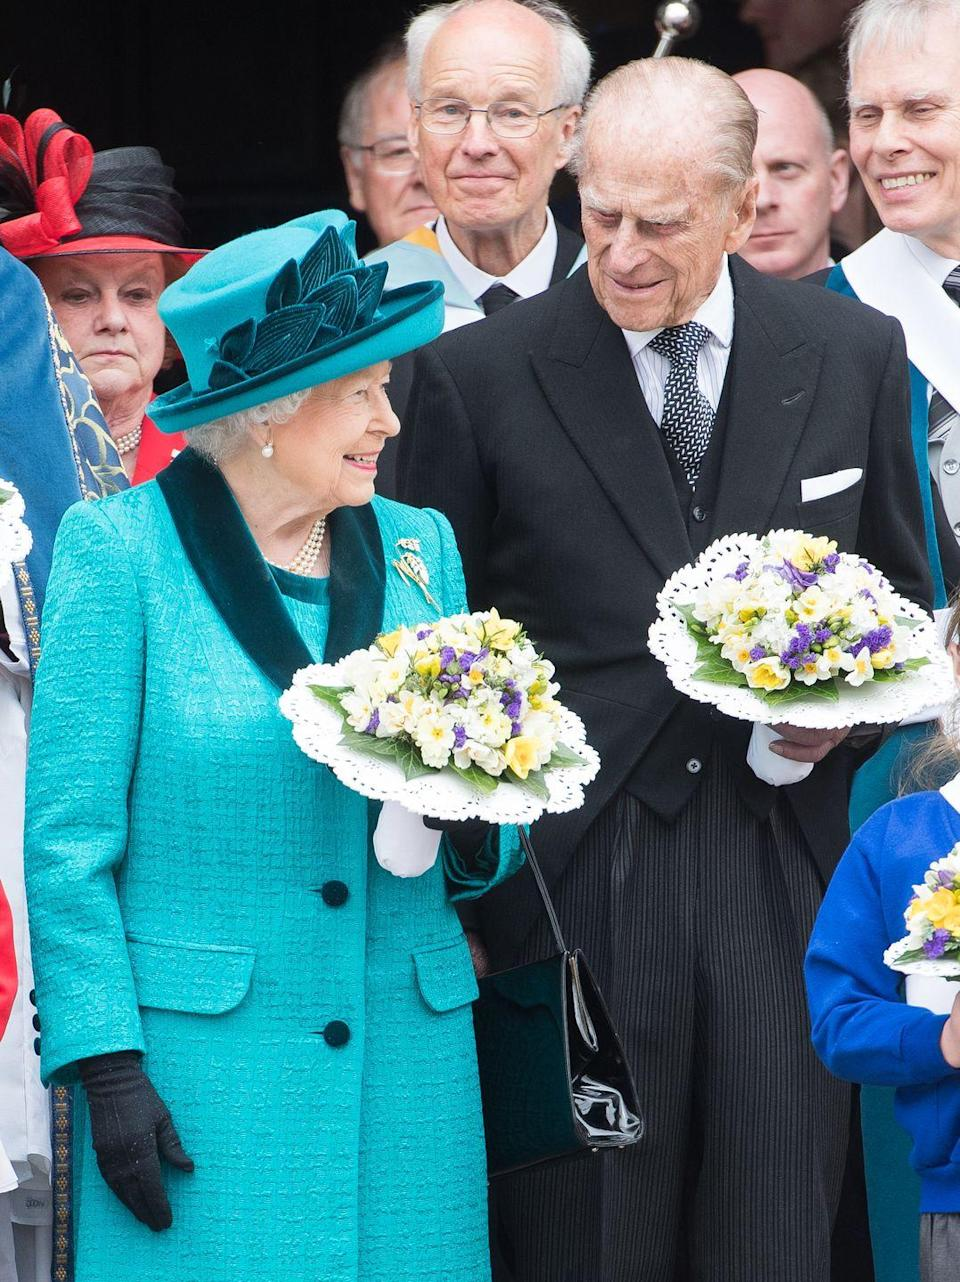 <p>Prince Philip celebrated his 70th wedding anniversary with the Queen, making them the first monarch and consort to reach a platinum wedding anniversary. The couple have eight grandchildren and 10 great-grandchildren between them.</p>